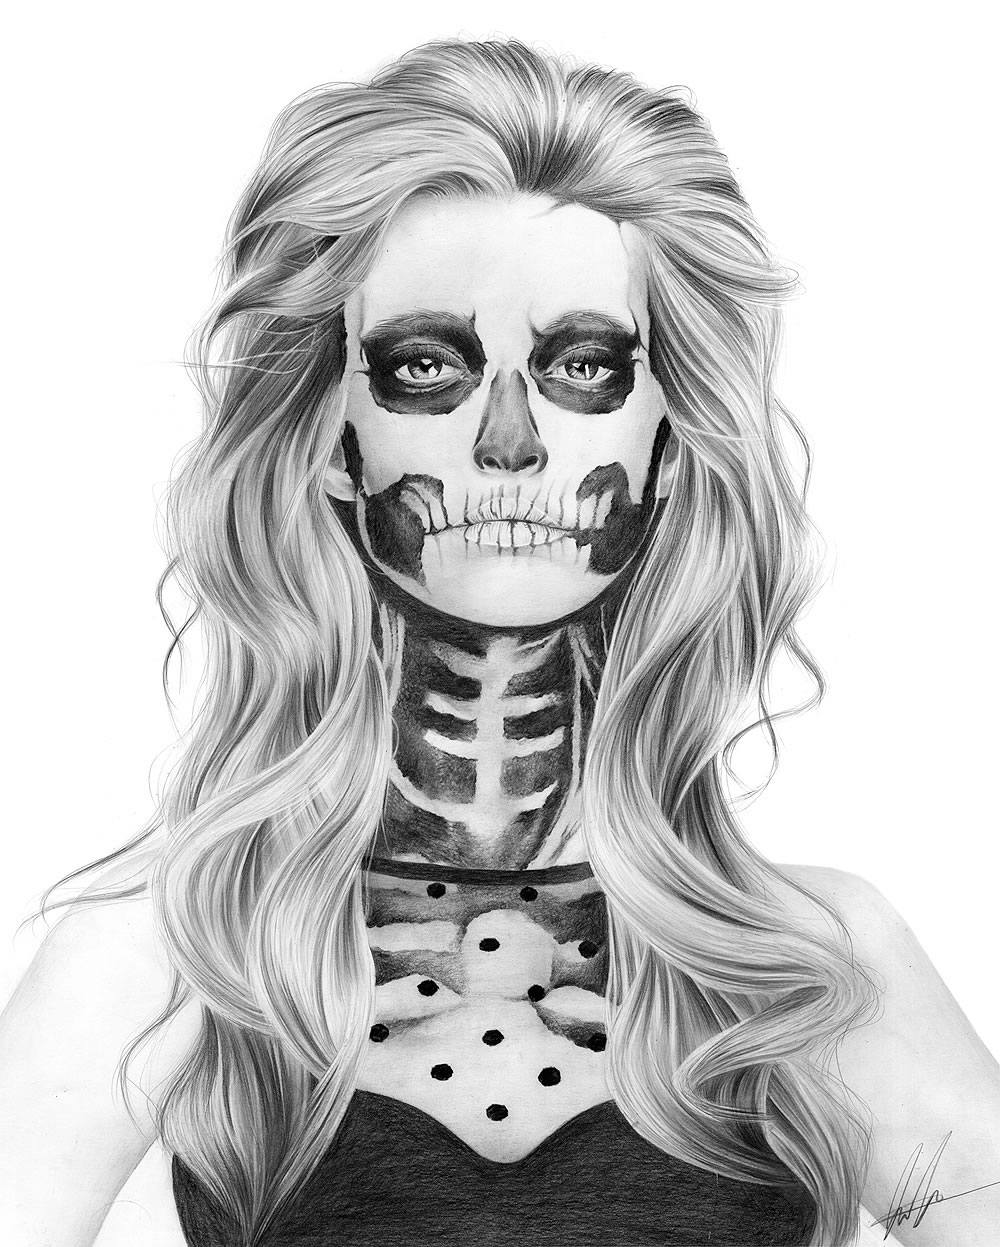 skull girl,l aura eddy pencil illustrations